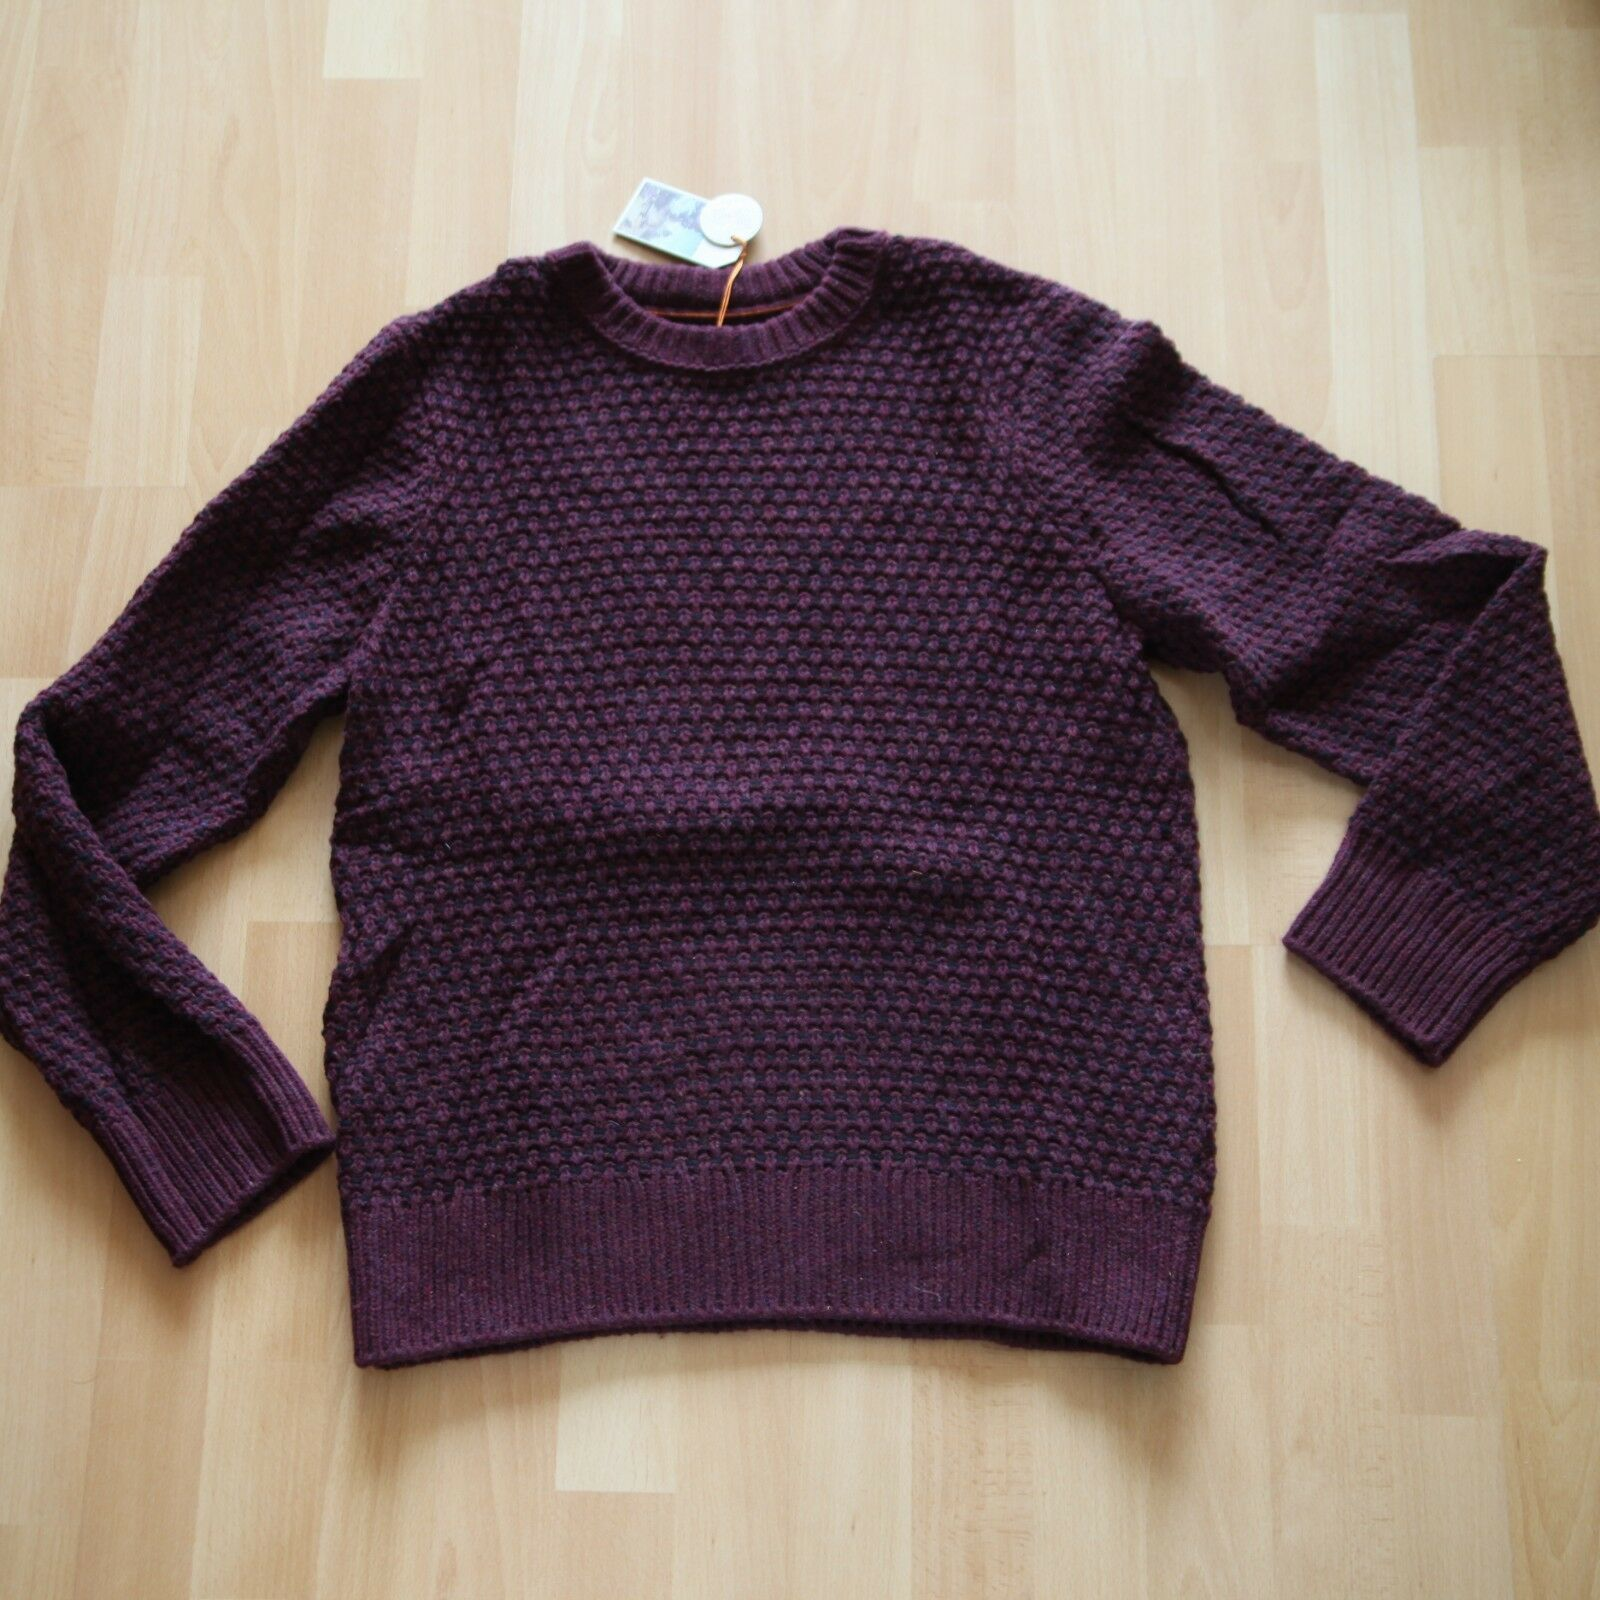 NEU Nudie Jeans Knitted Pullover Pulli Hampus Basket Knit Plum M